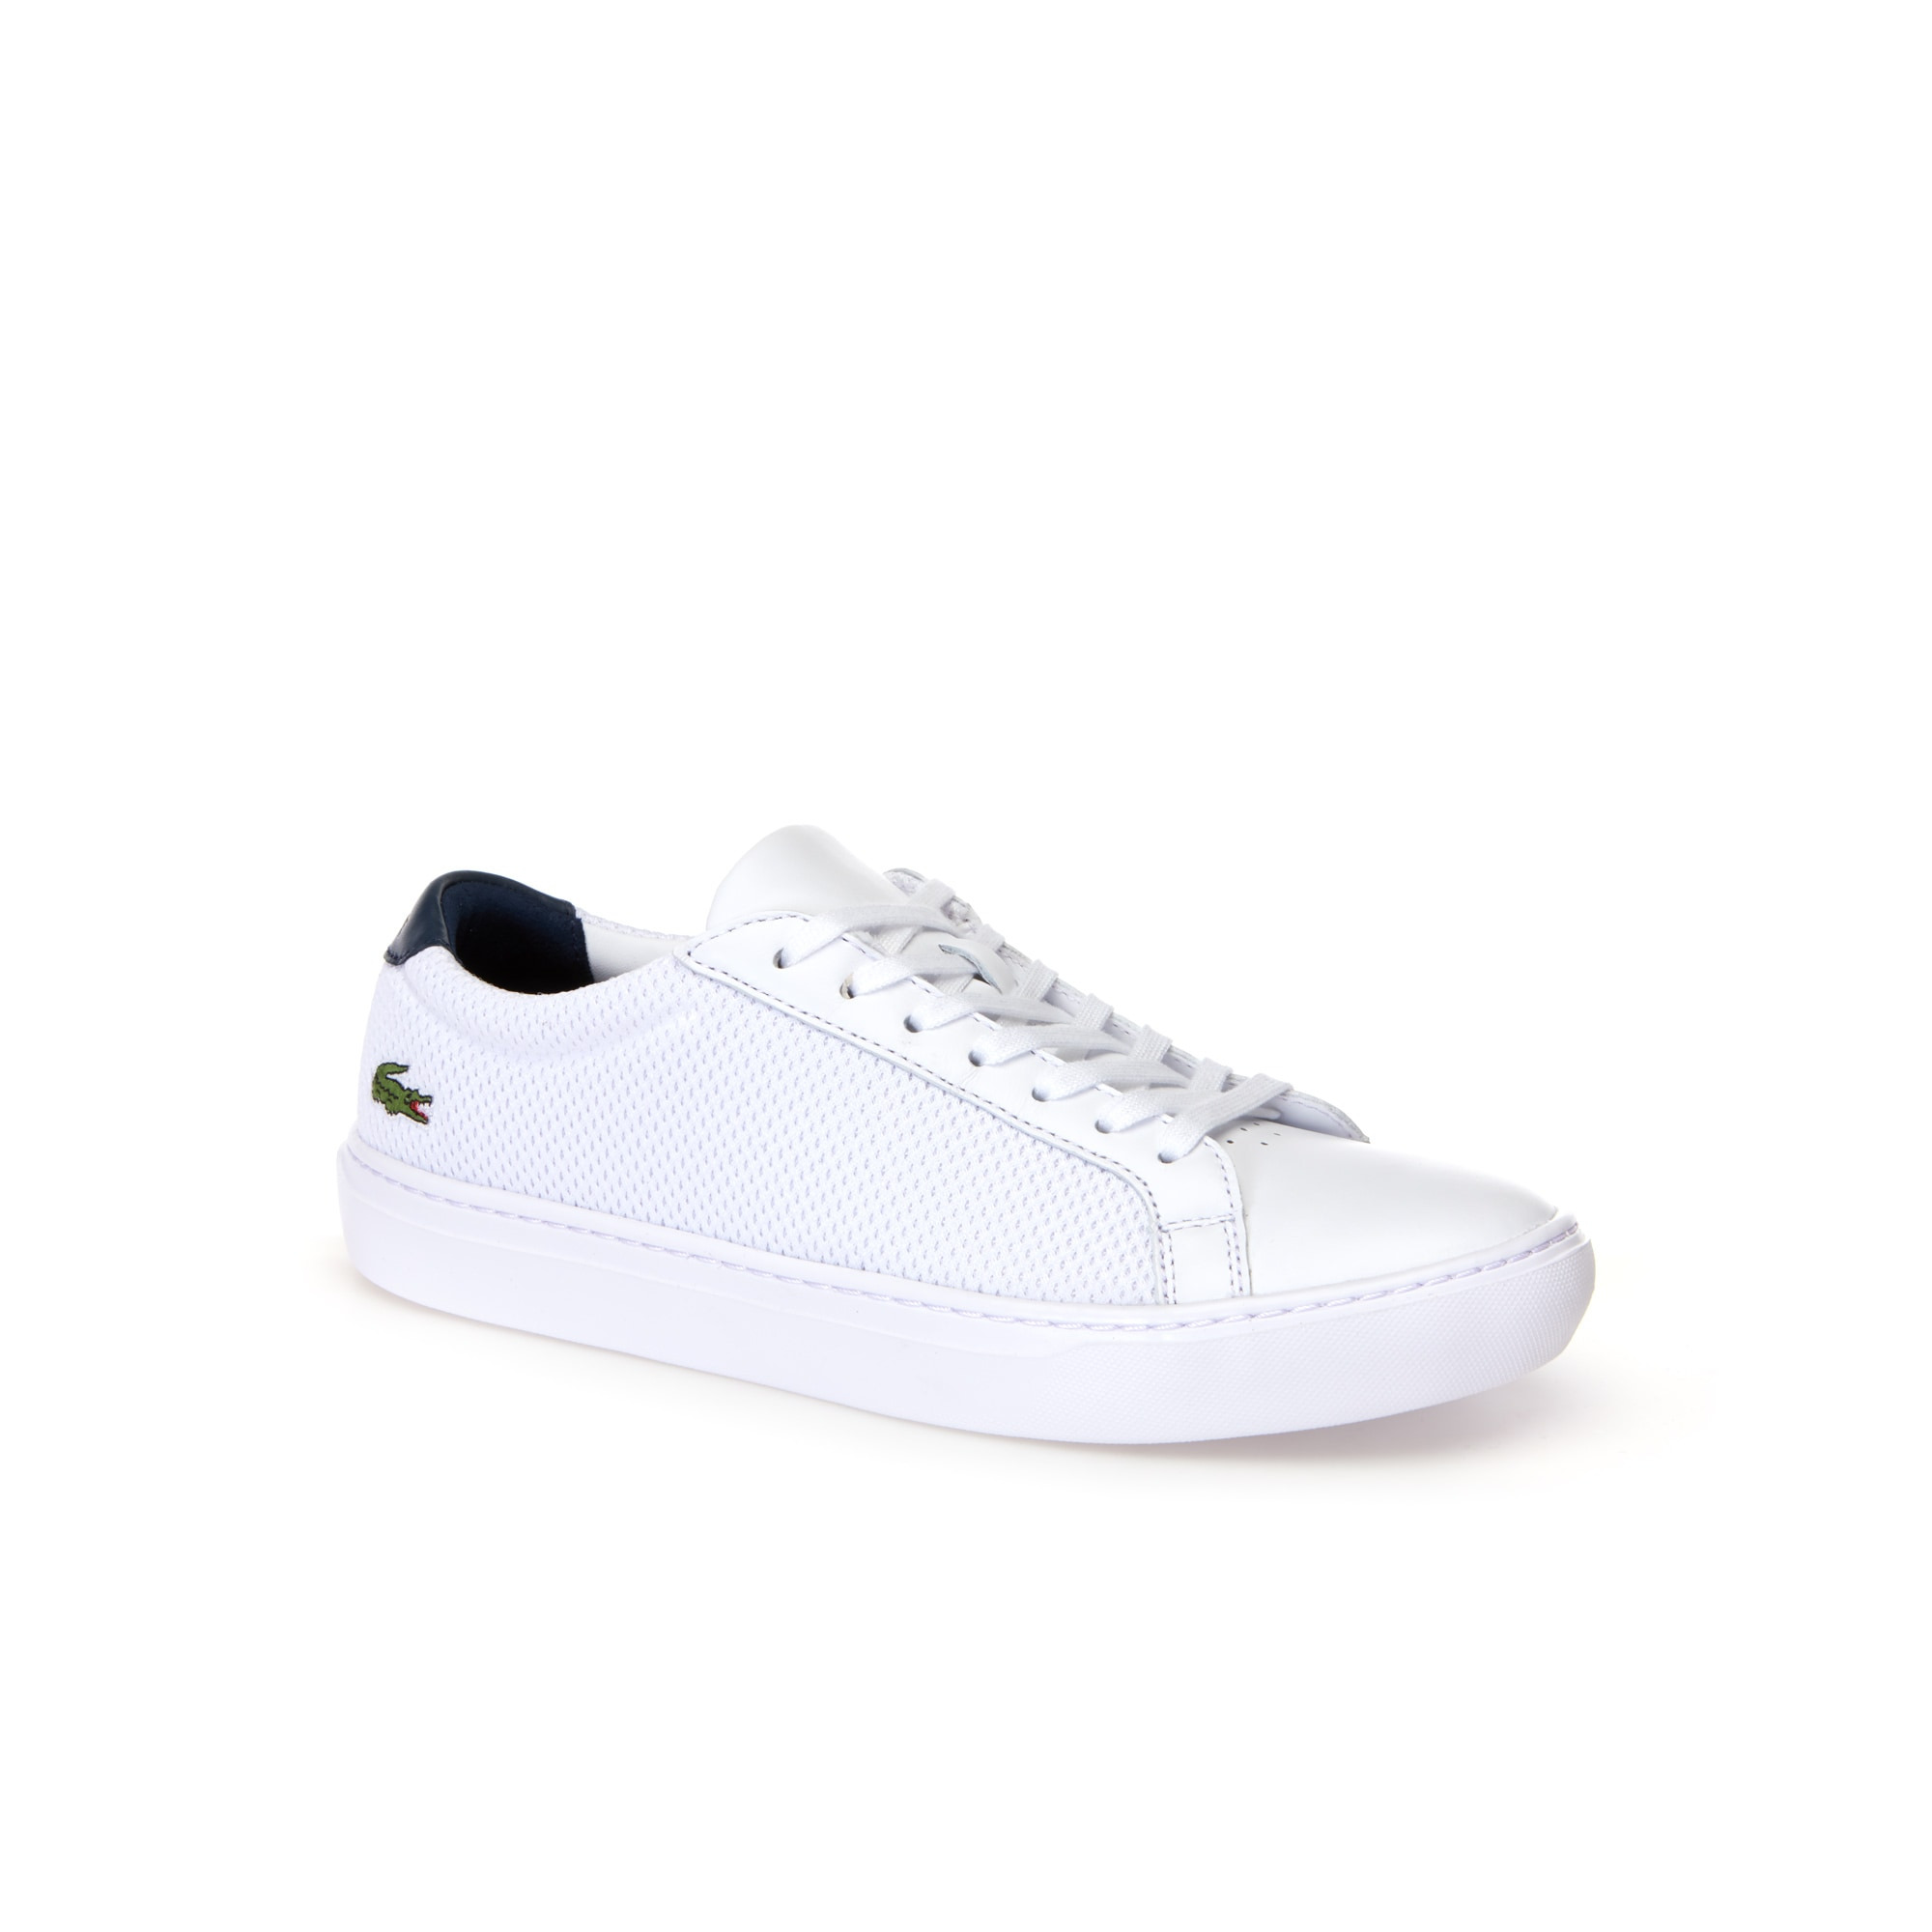 f27e7f7dbcf5 Men s L.12.12 LIGHT-WT Leather and Textile Trainers